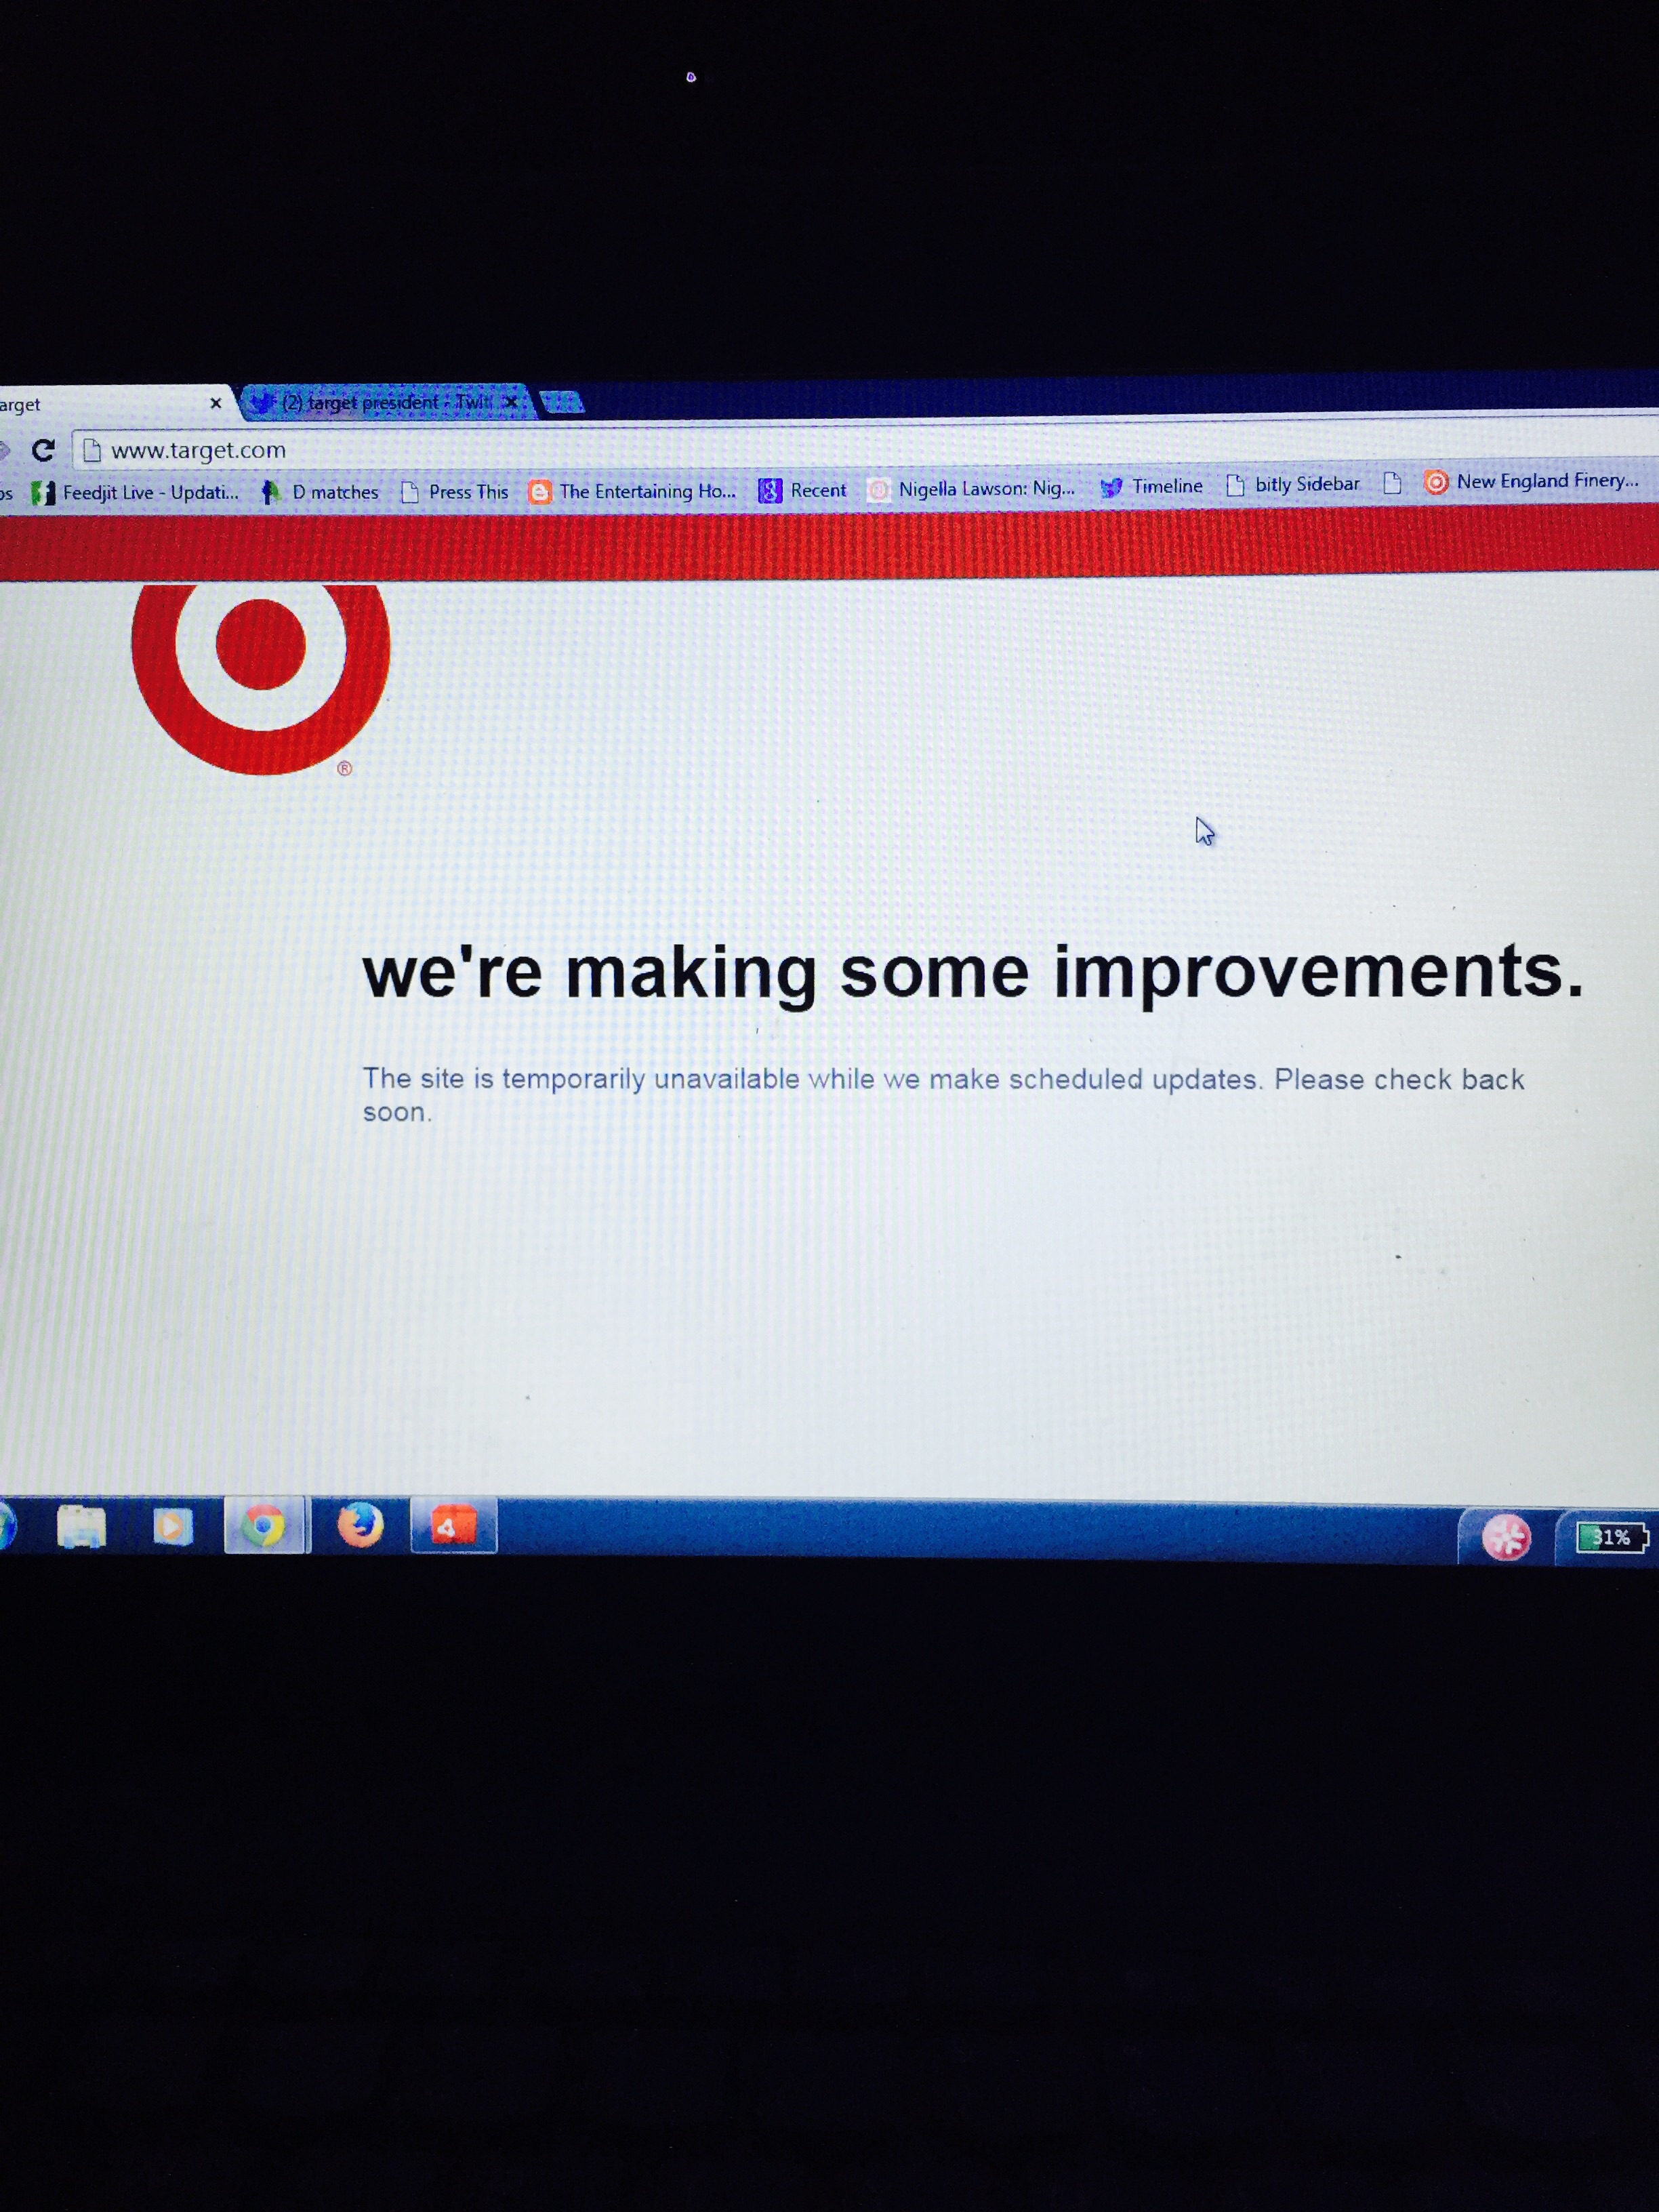 The Target website after the stroke of Midnight on April 19th, 2015